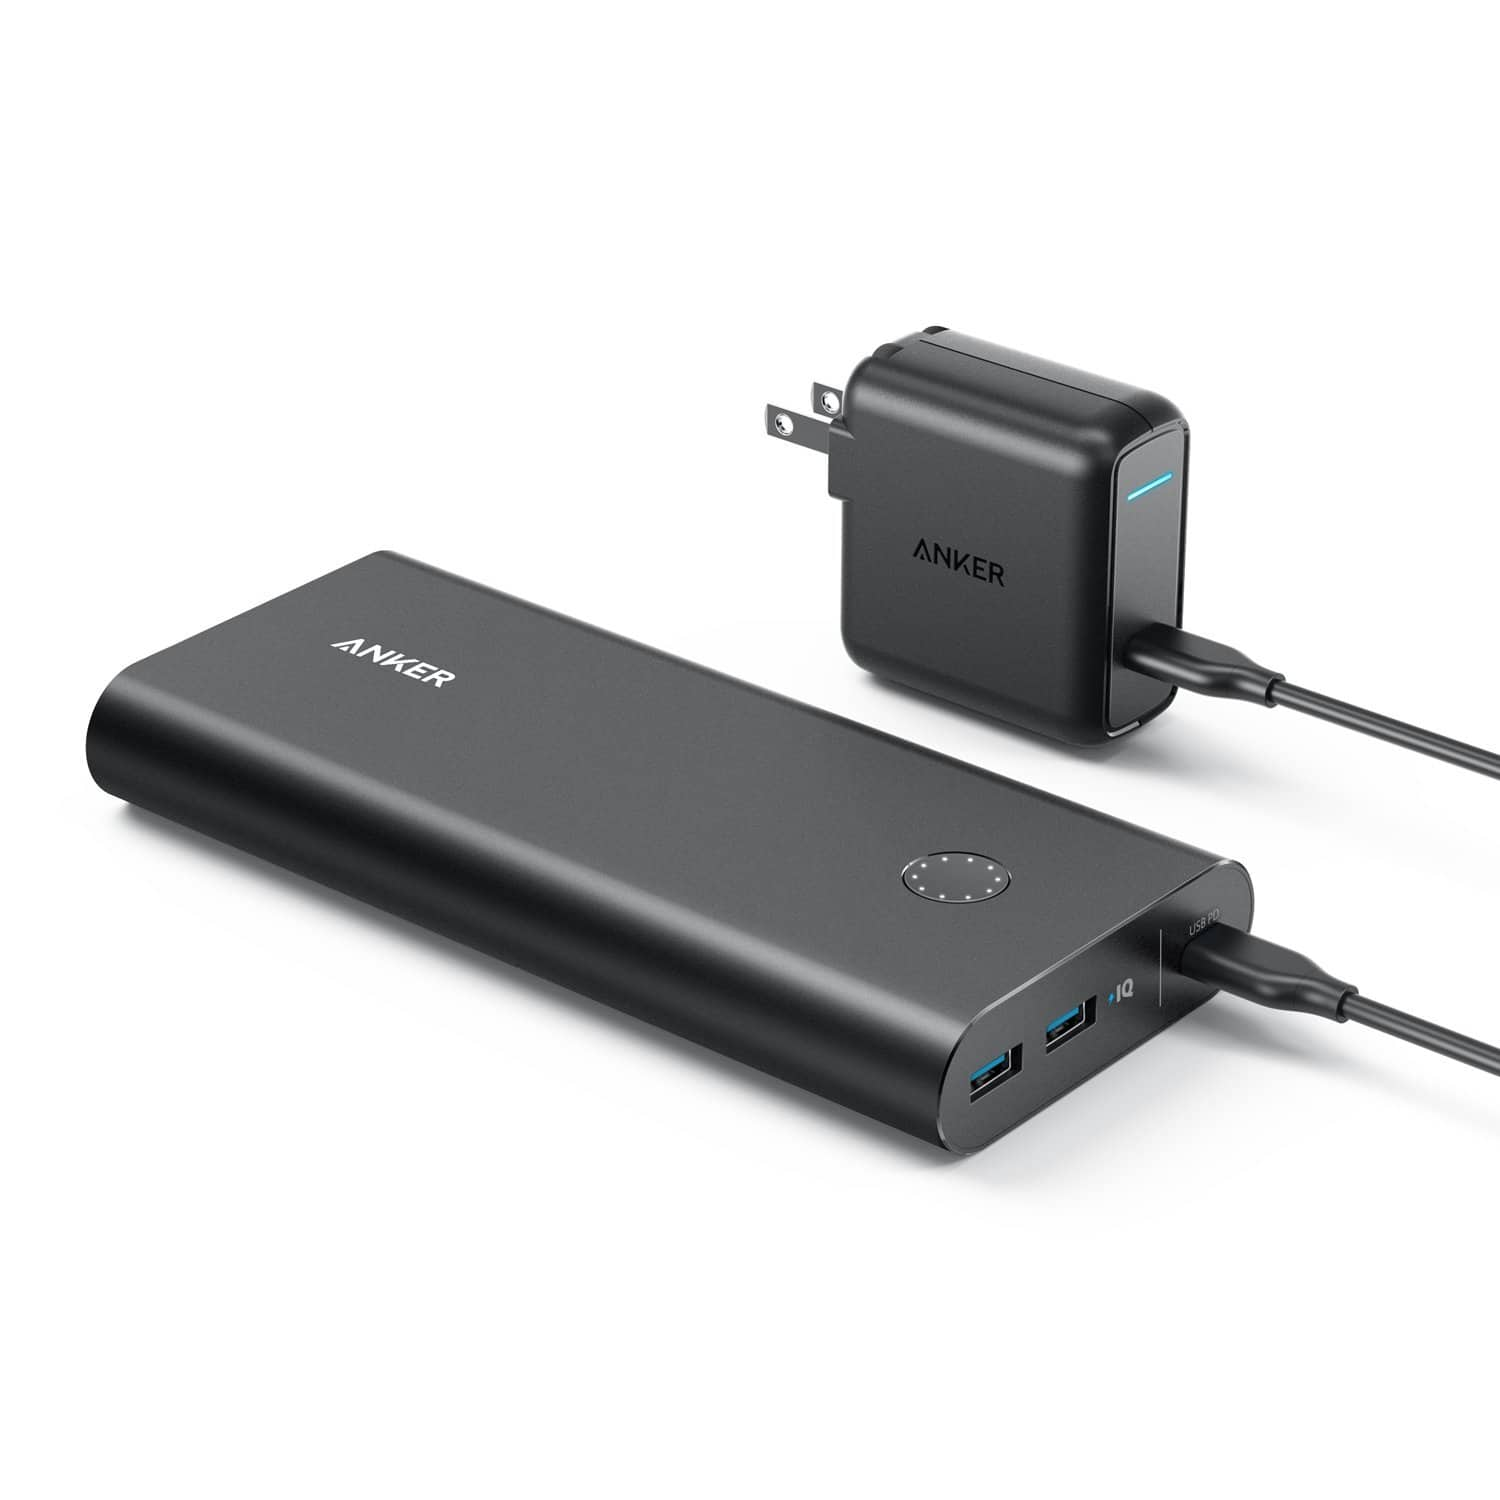 Anker PowerCore+ 26800 PD with 27W PD Portable Charger Bundle for Nintendo Switch & USB Type-C Laptops (e.g. 2016 MacBook) Power Delivery Support $79.99